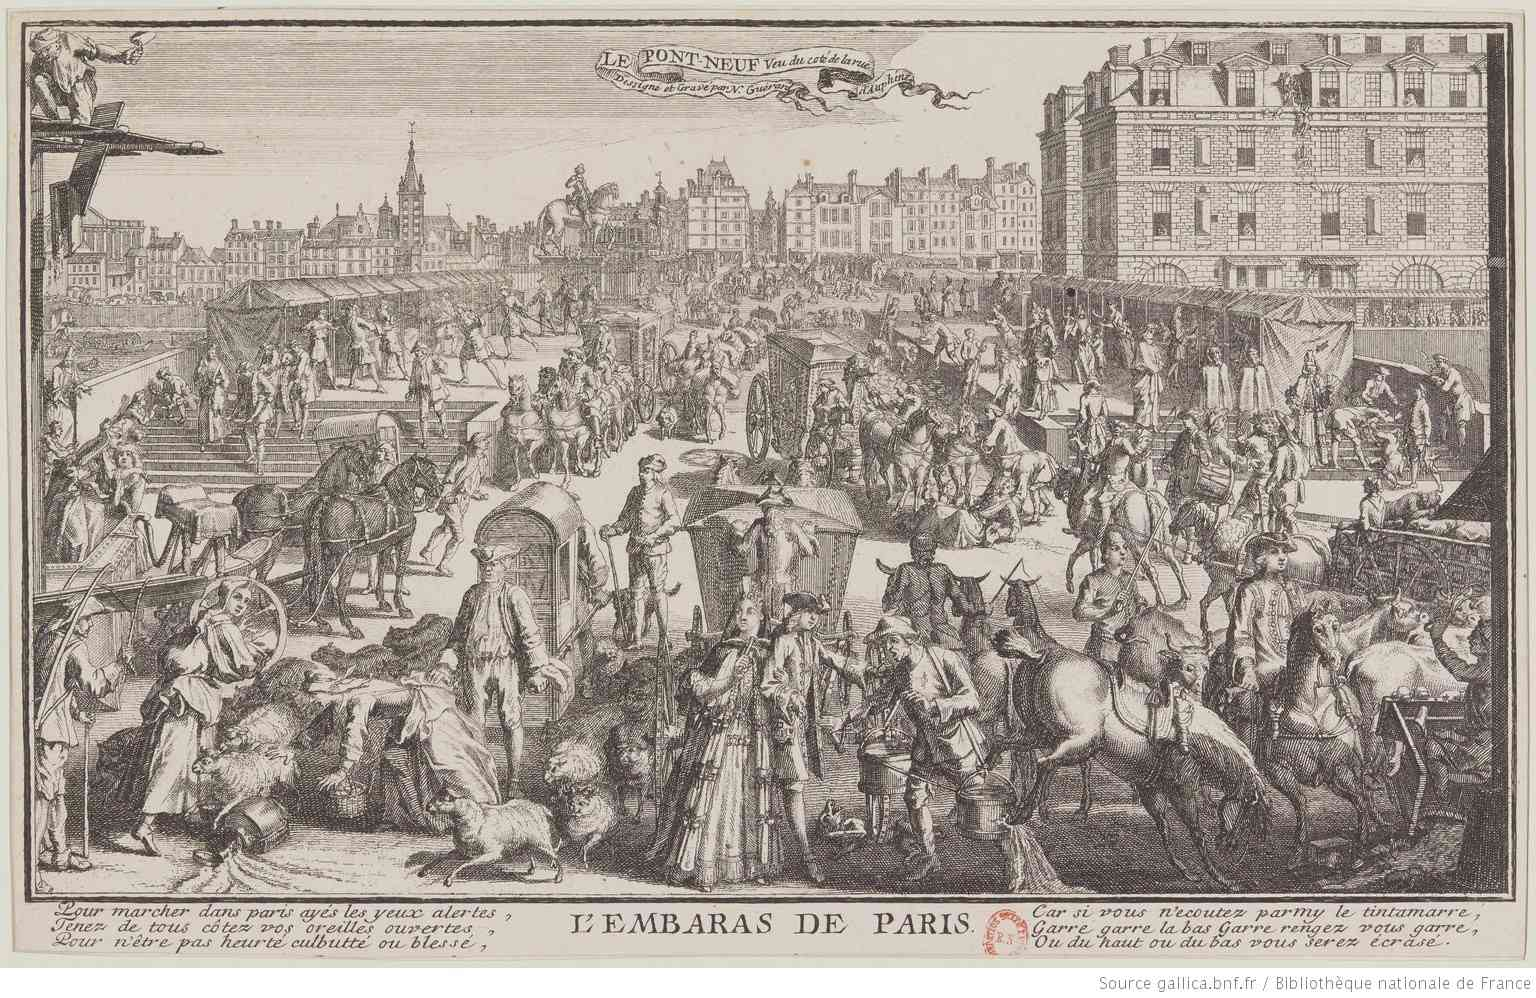 Nicolas Guérard, The Pont-Neuf seen from rue Dauphine, engraving, 18th century. This engraving shows the many means of transportation used by Parisians during the Age of Enlightenment. In the foreground can be seen two carriages, a sedan chair, riders on horseback, a horse-drawn cart. It is significant that the artist chose to represent this congested scene on one of Paris' most modern, sidewalk-equipped streets.  Photo credit: Library of the Decorative Arts/BNF